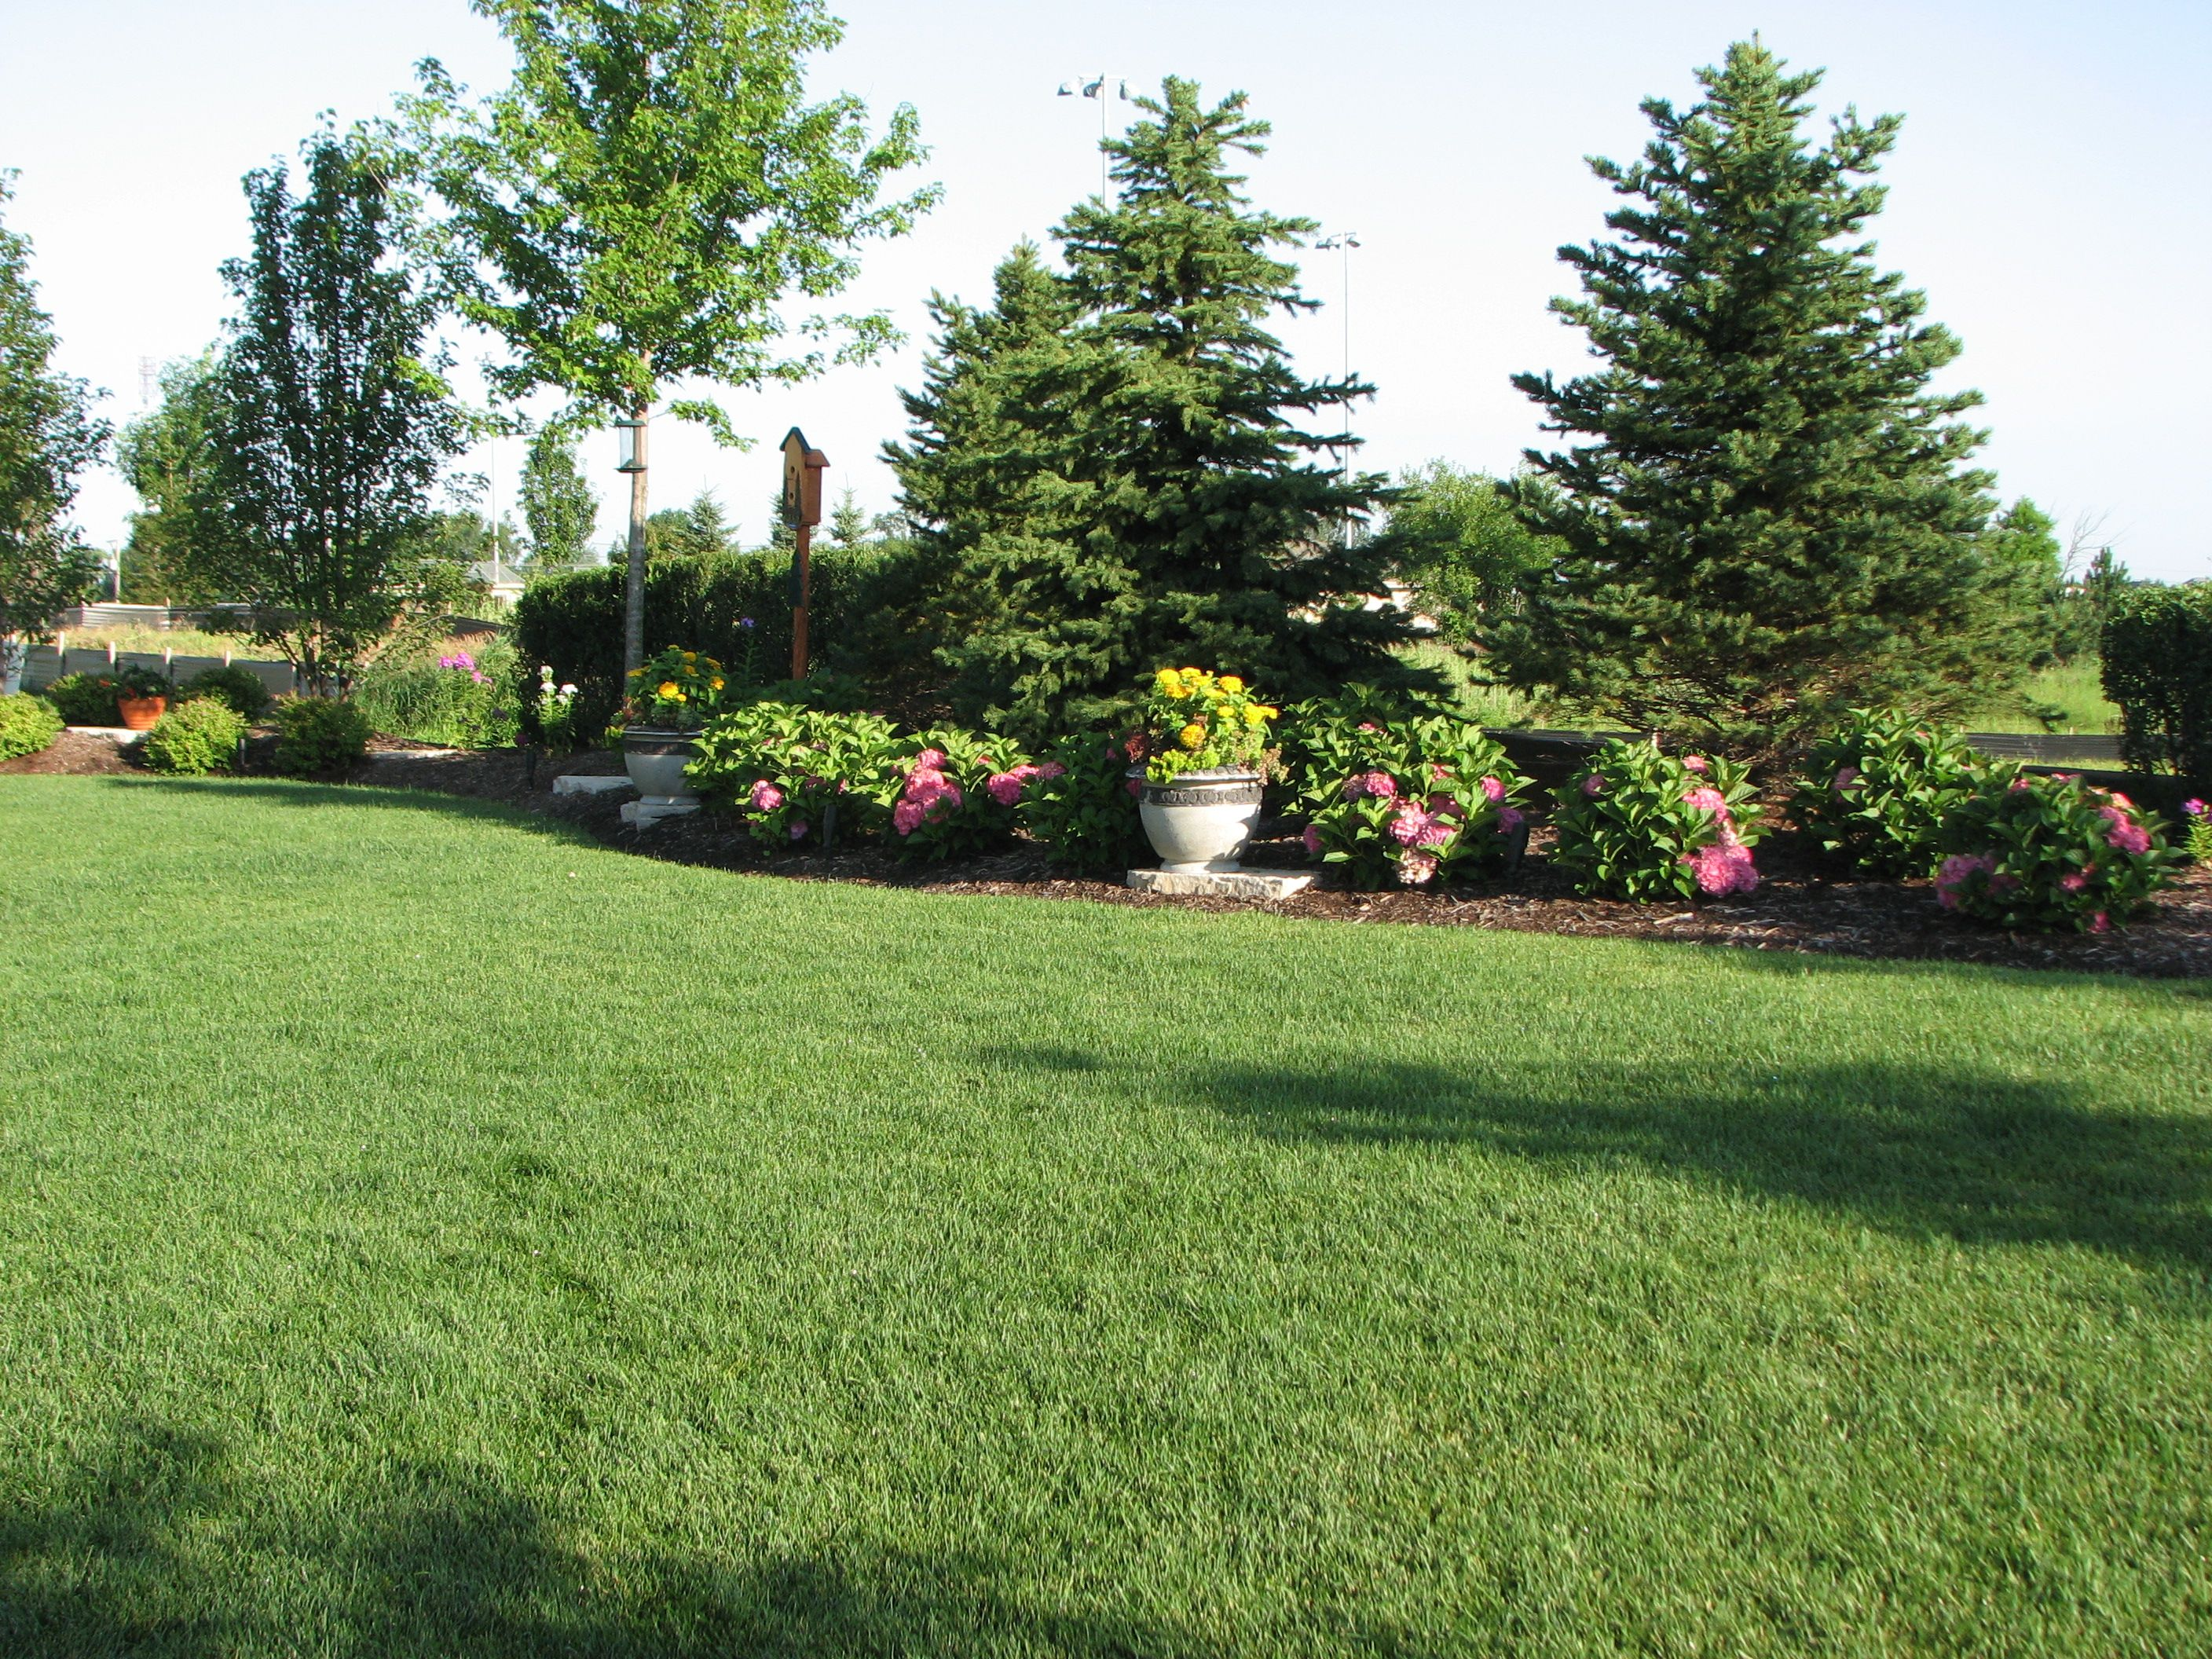 Backyard landscaping for privacy existing home for Outdoor landscape design